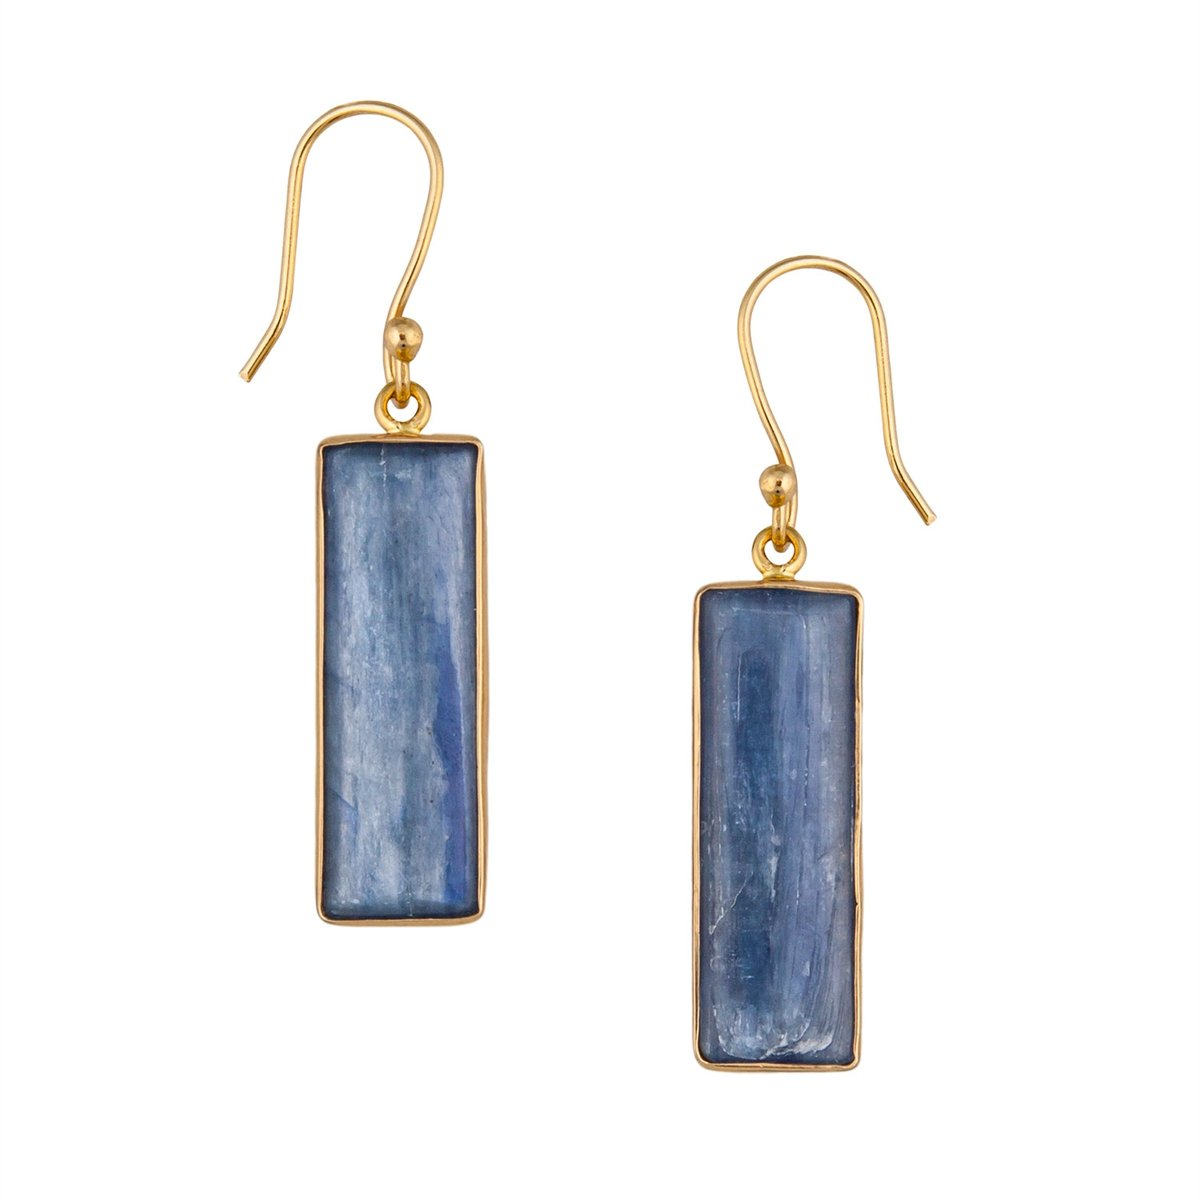 alchemia-kyanite-earrings - 1 - Charles Albert Inc